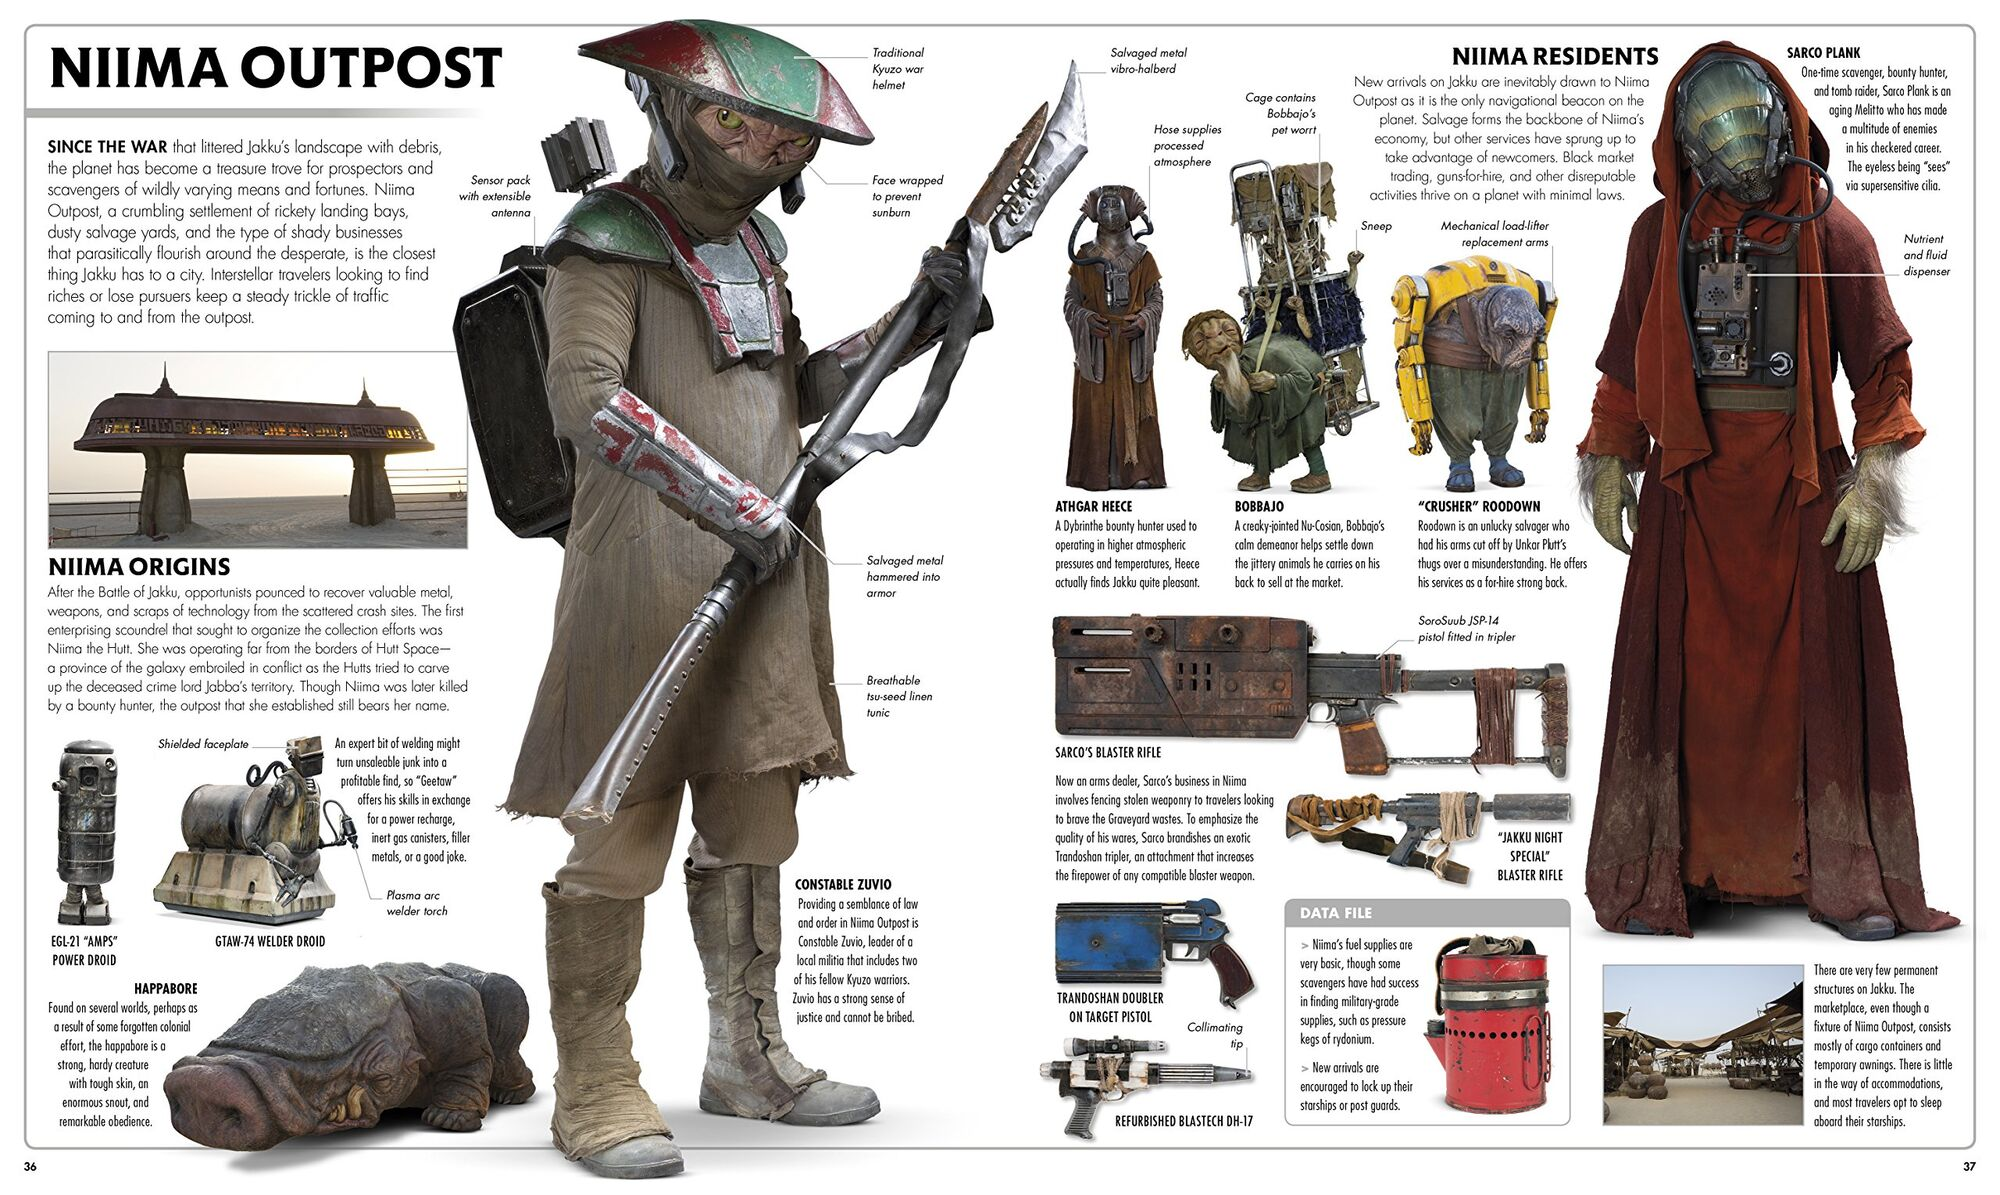 The Ultimate Character Design Book Pdf : Image nima outpost tfa visual guide g disney wiki